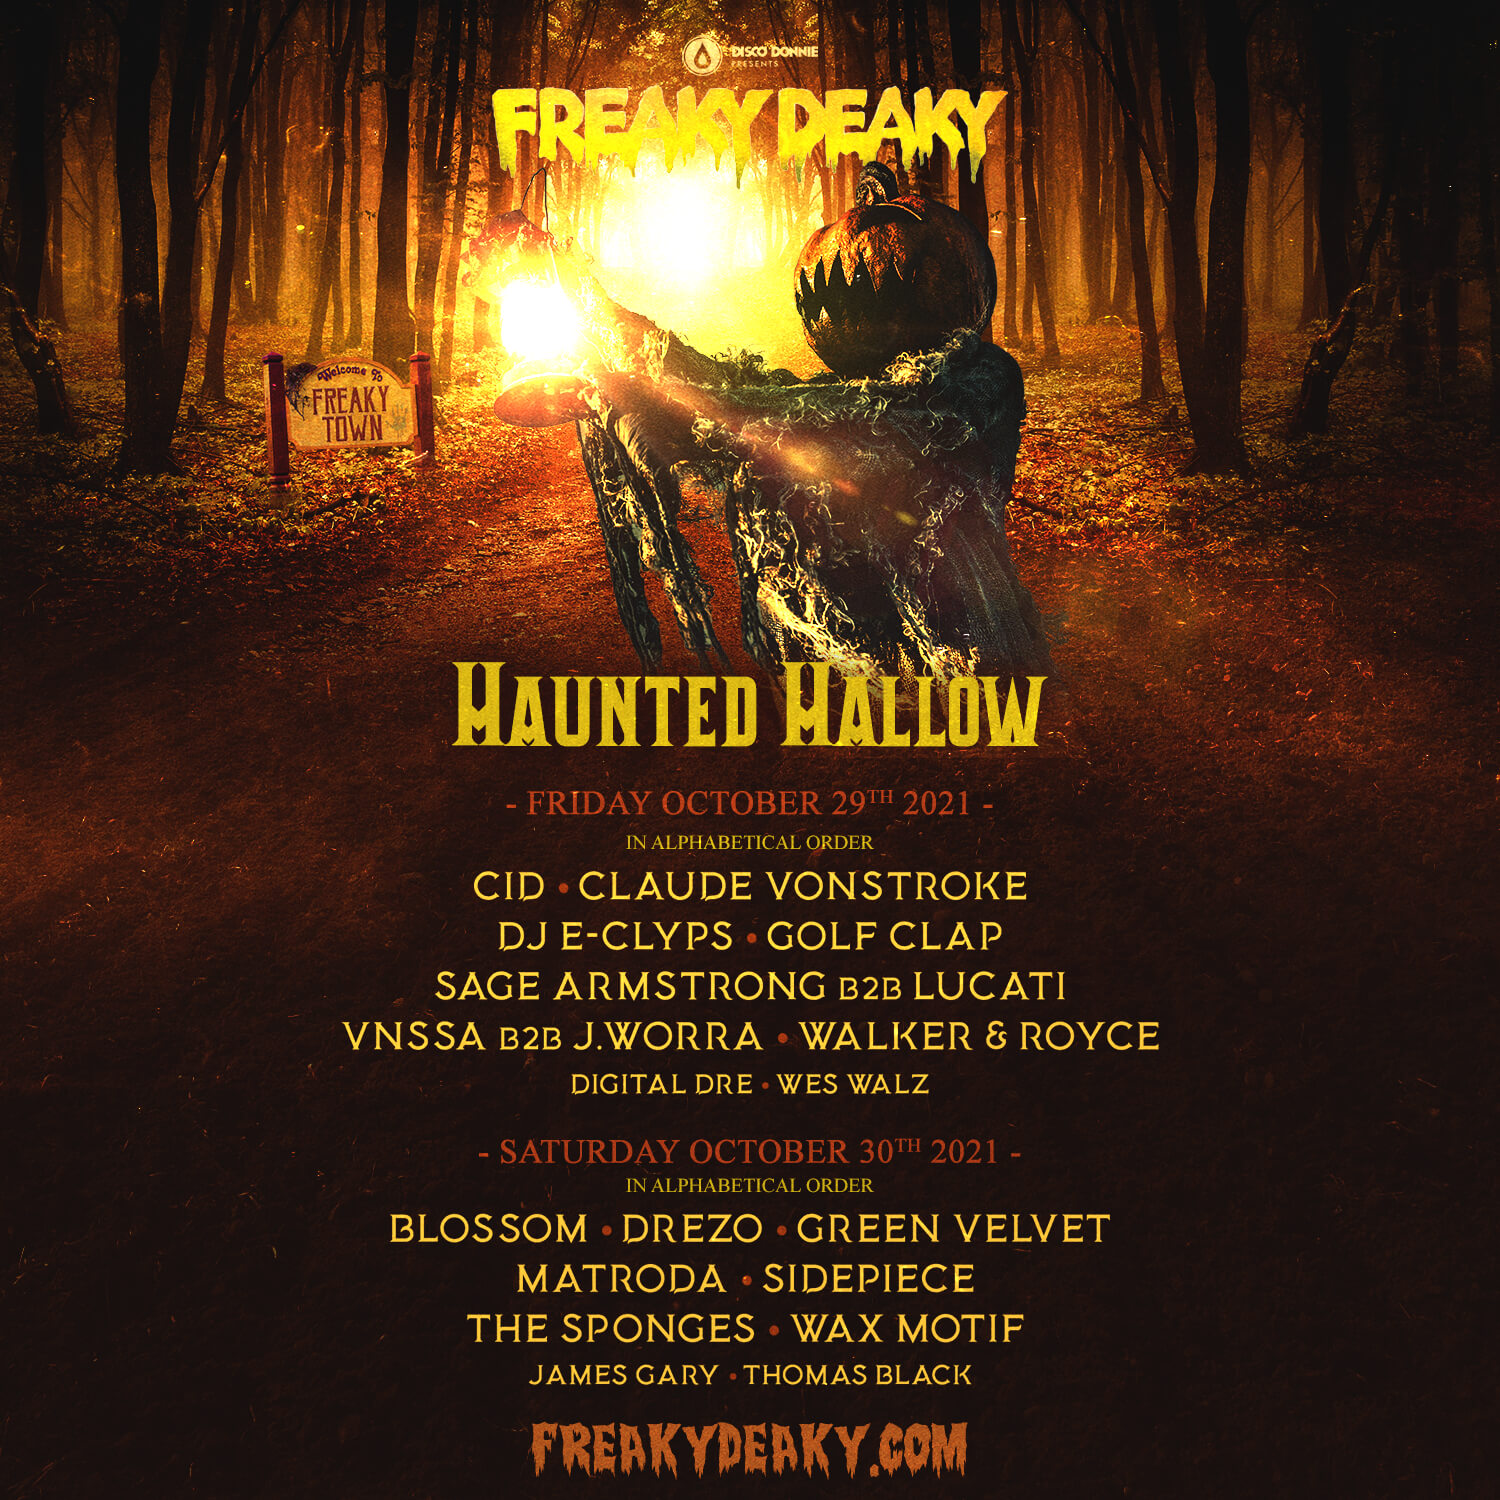 freaky deaky festival 2021 haunted hallow stage lineup